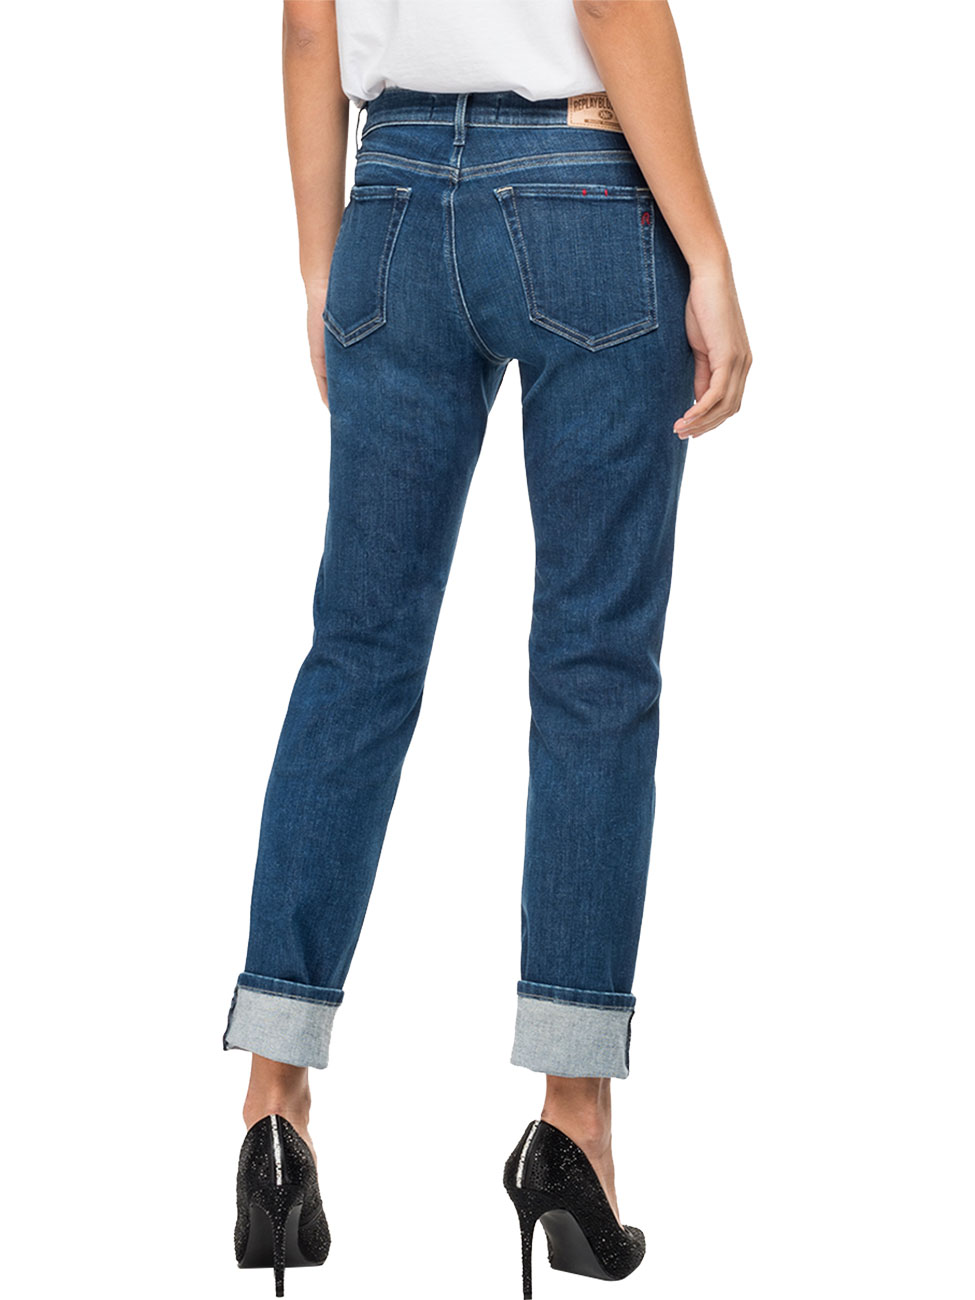 replay-damen-jeans-vivy-slim-fit-blau-dark-blue-denim